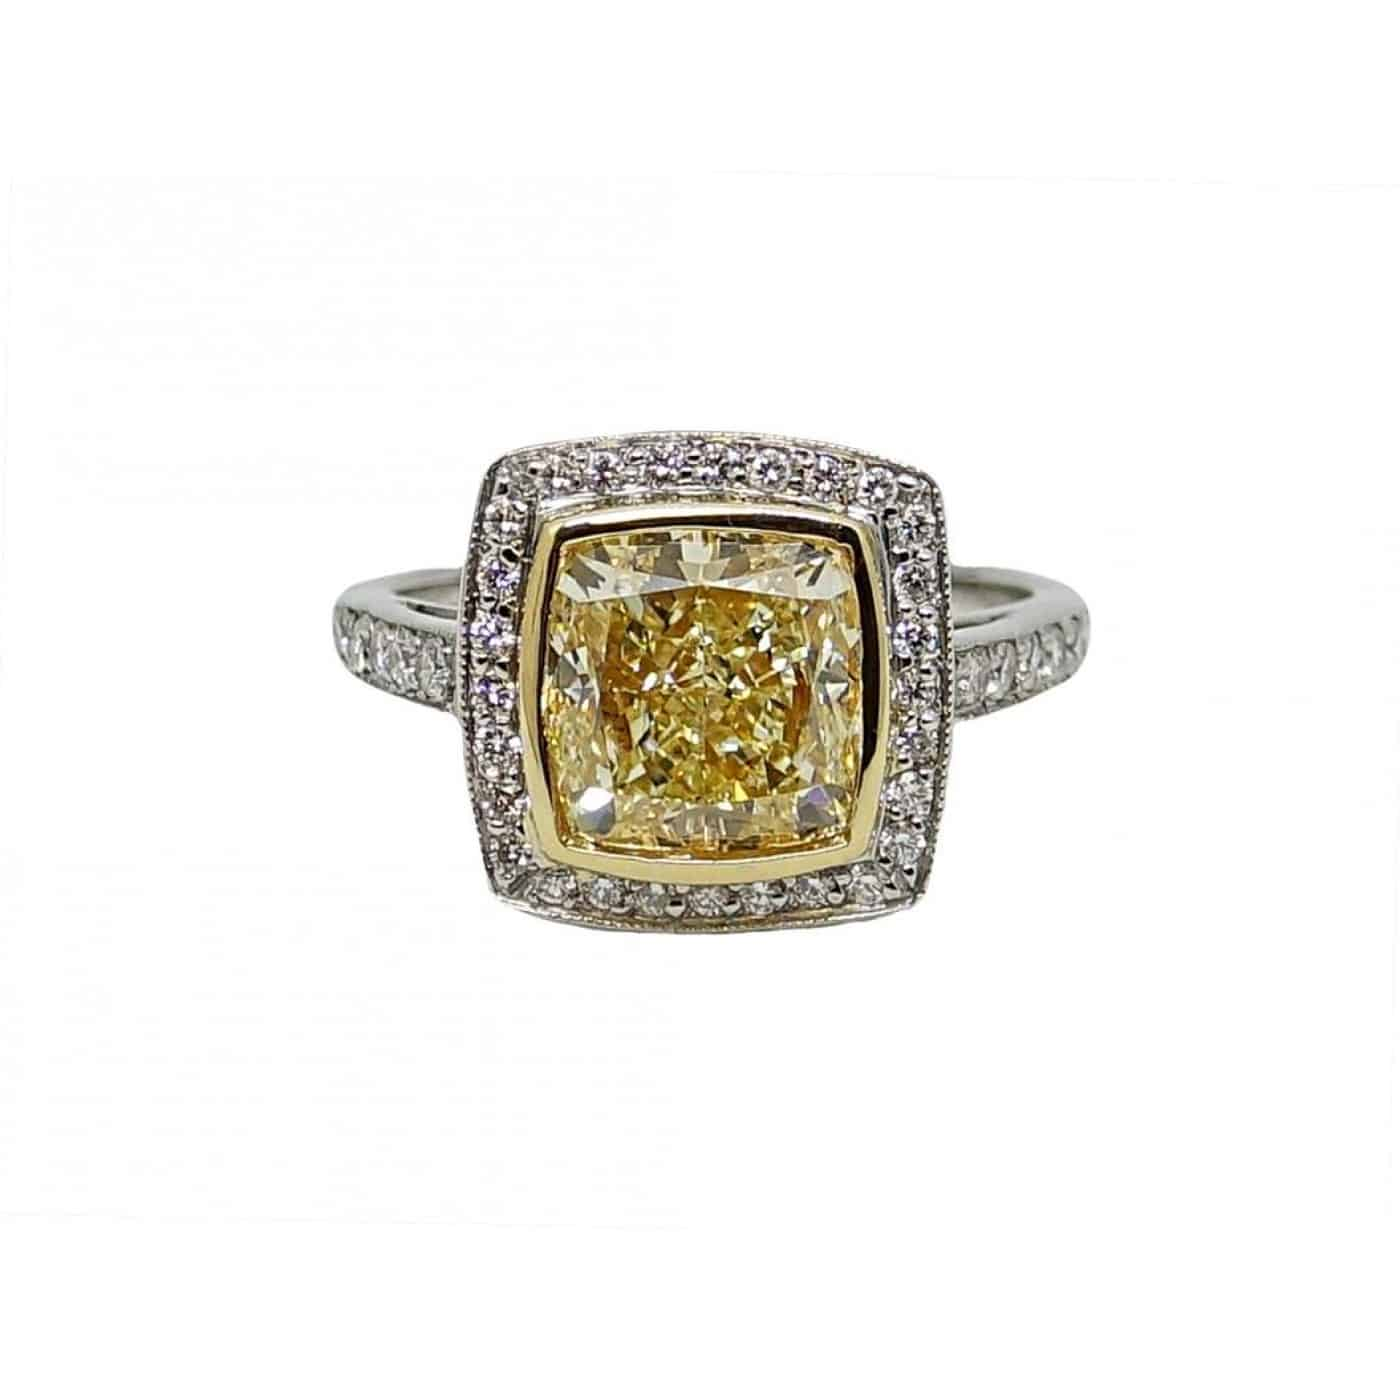 Gold and Platinum Engagement Ring with Light Yellow Radiant Cut Diamond